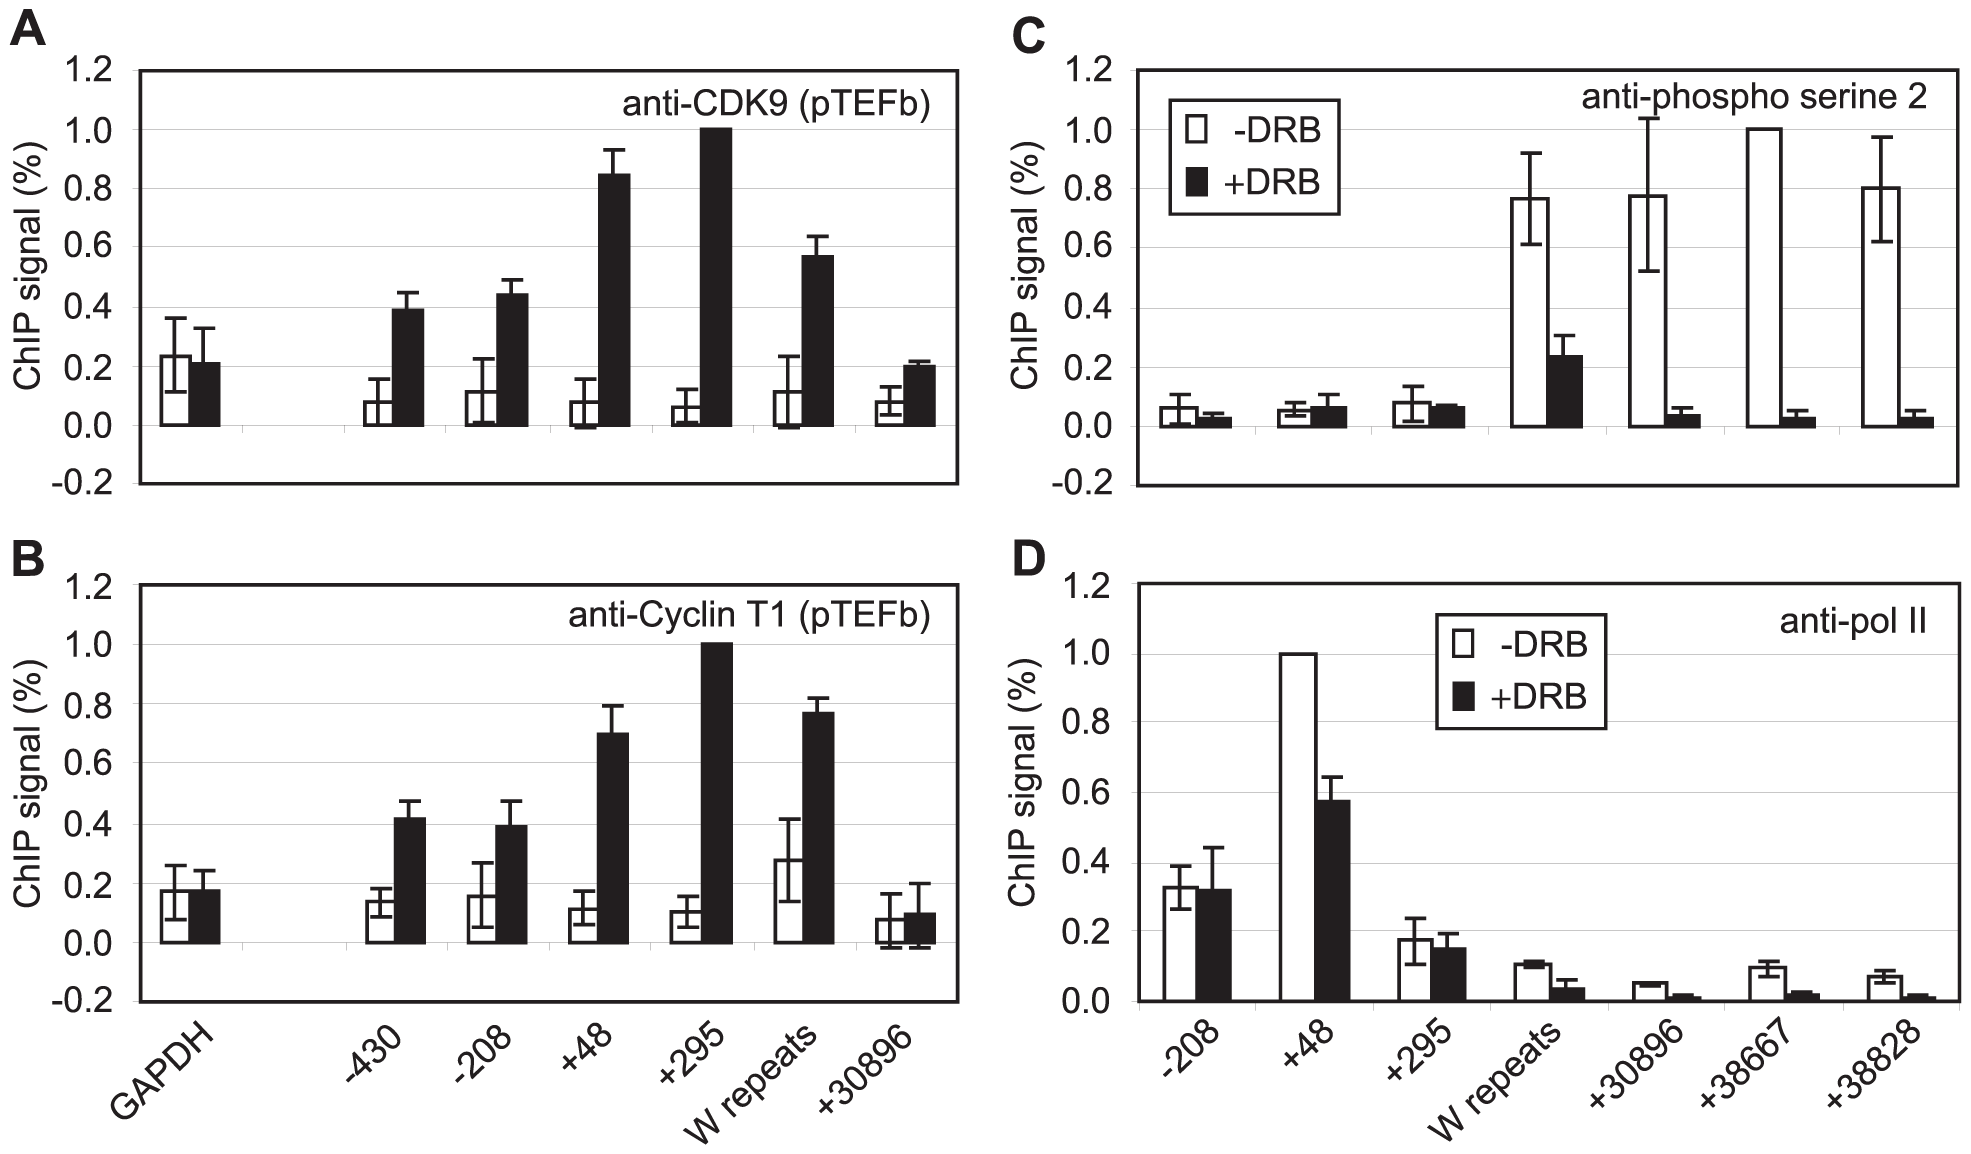 pTEFb is recruited to Cp and is required for serine 2 phosphorylation.